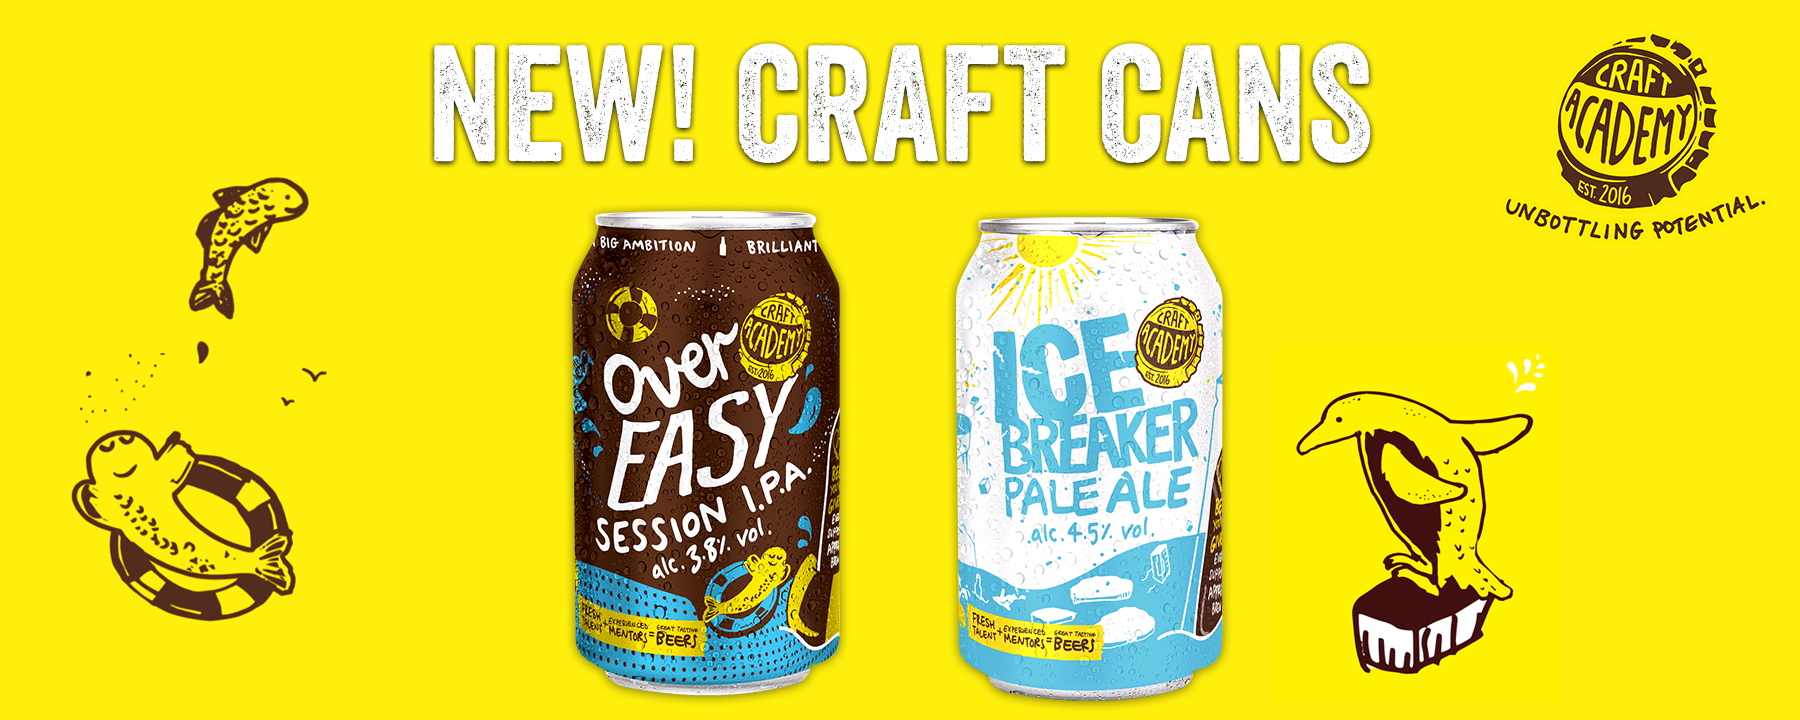 Craft Academy Cans